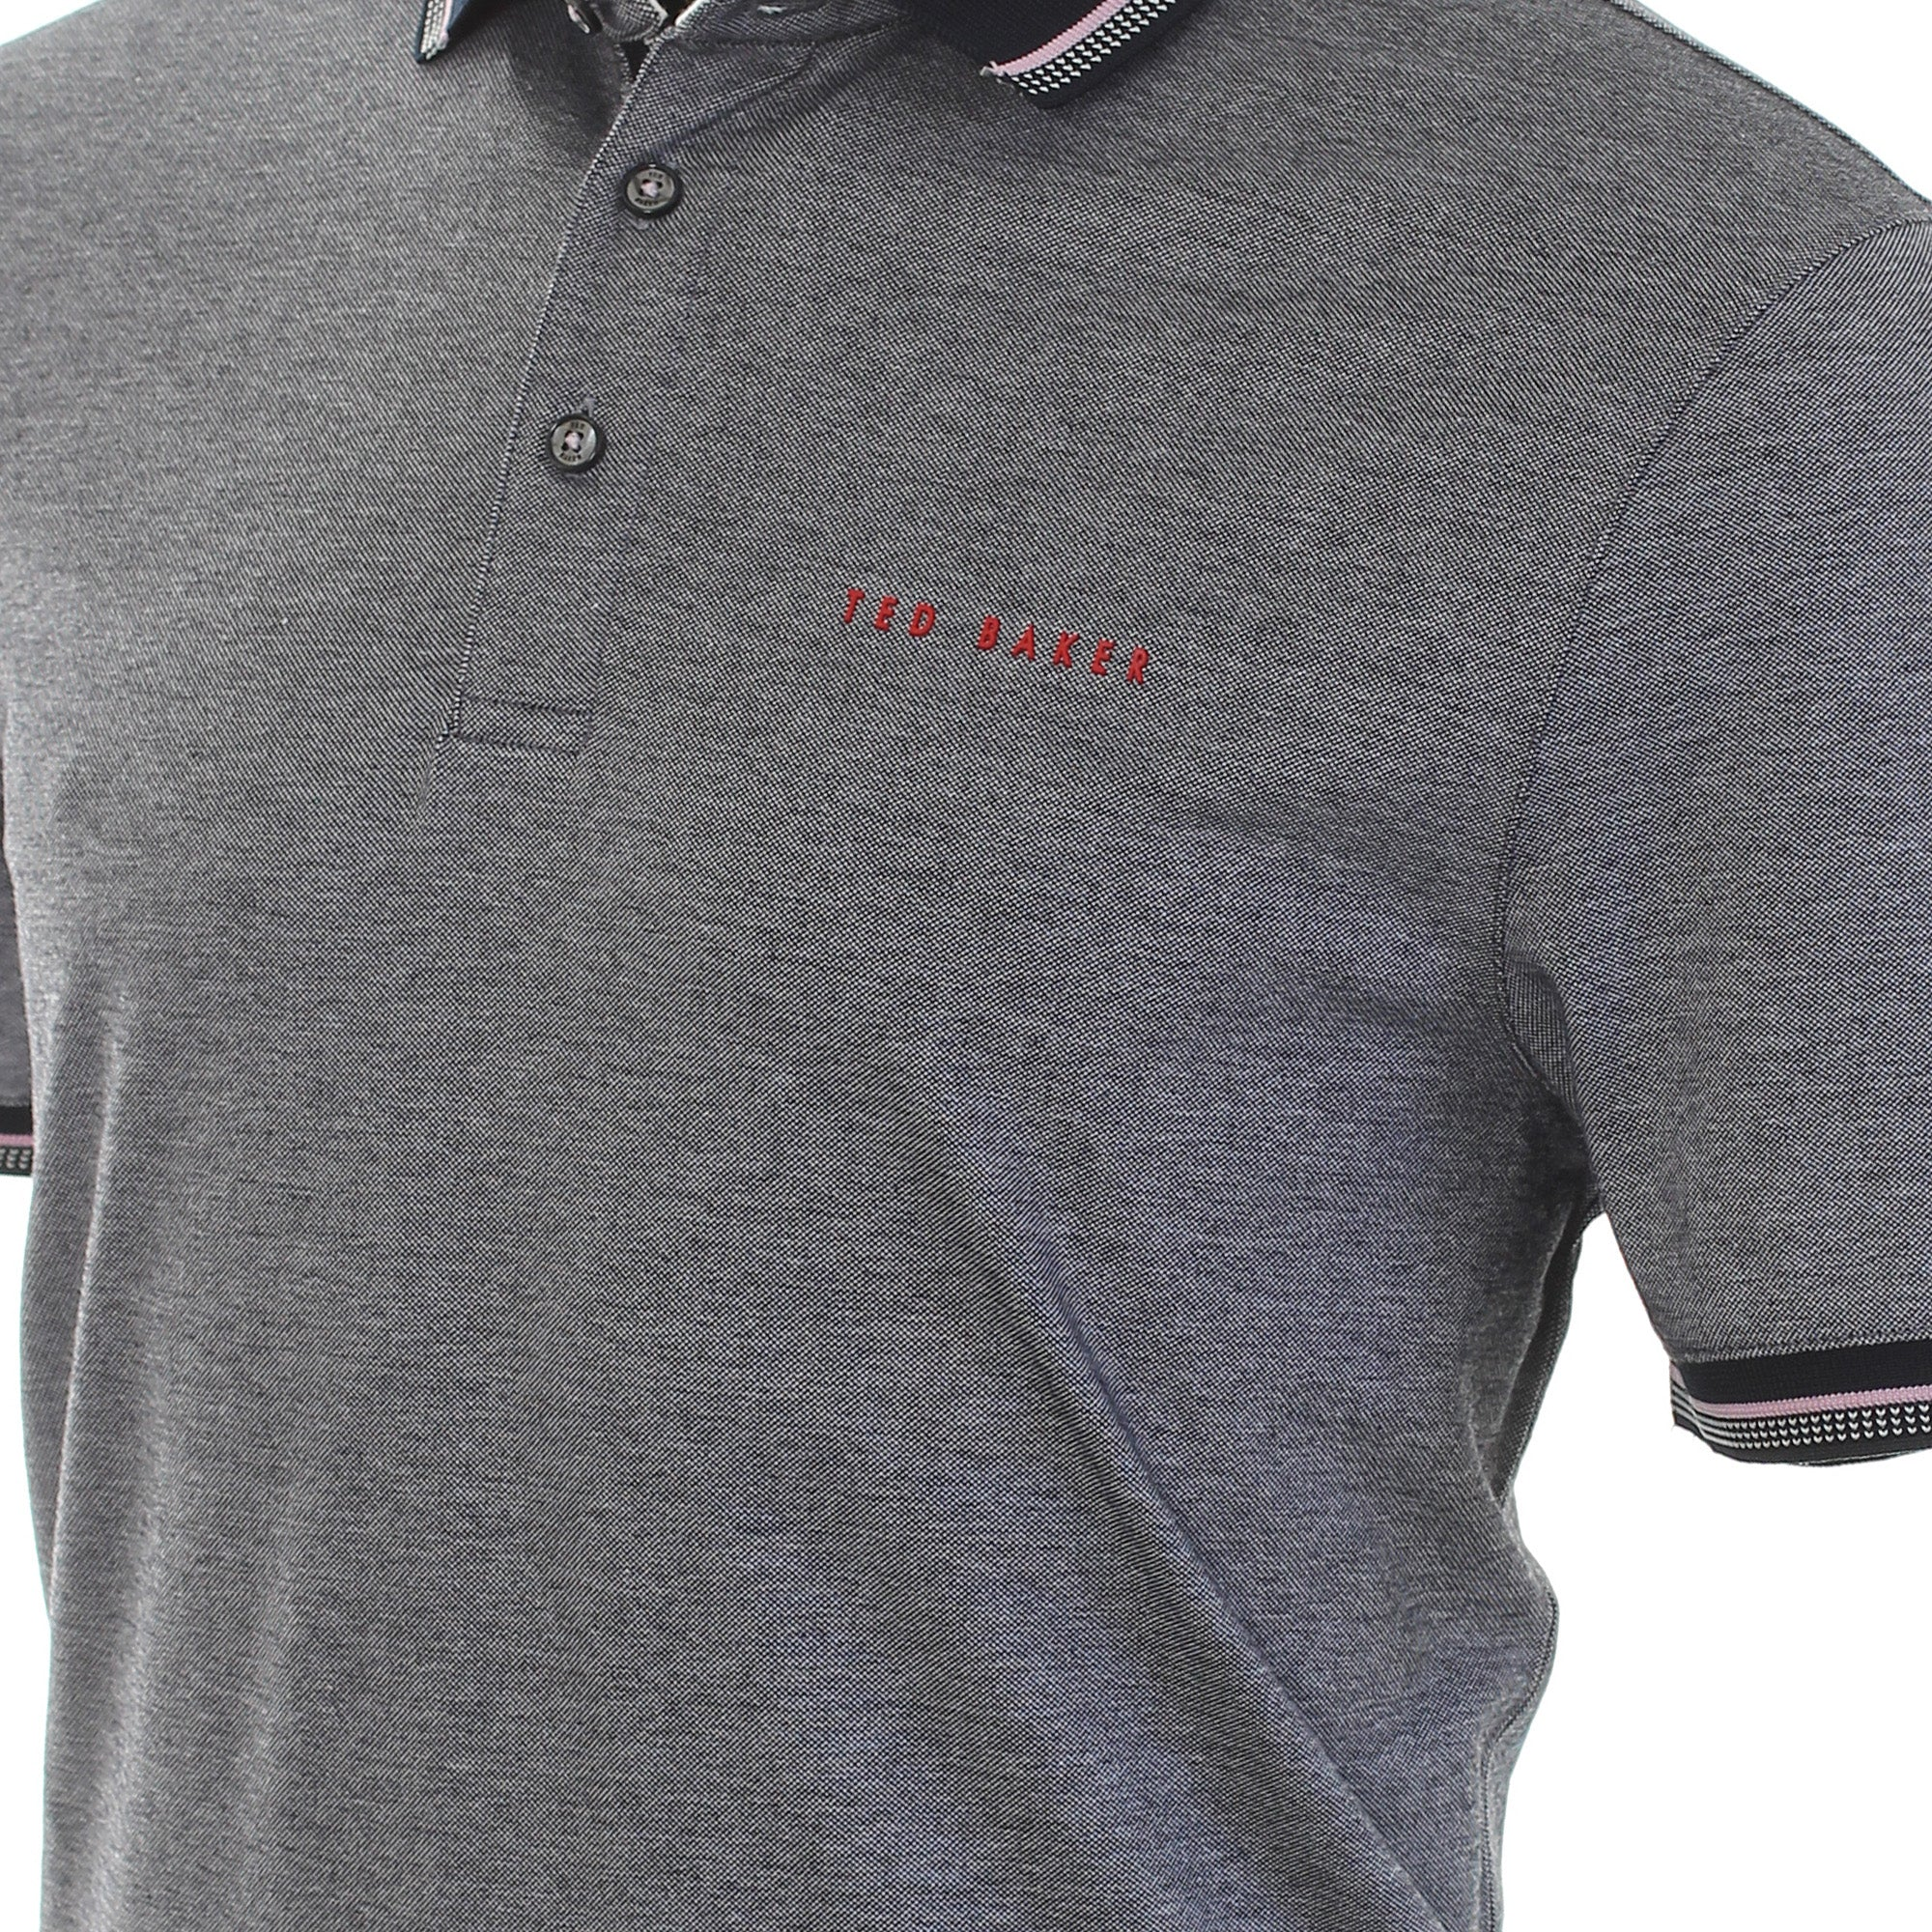 Ted Baker Golf Handie Shirt